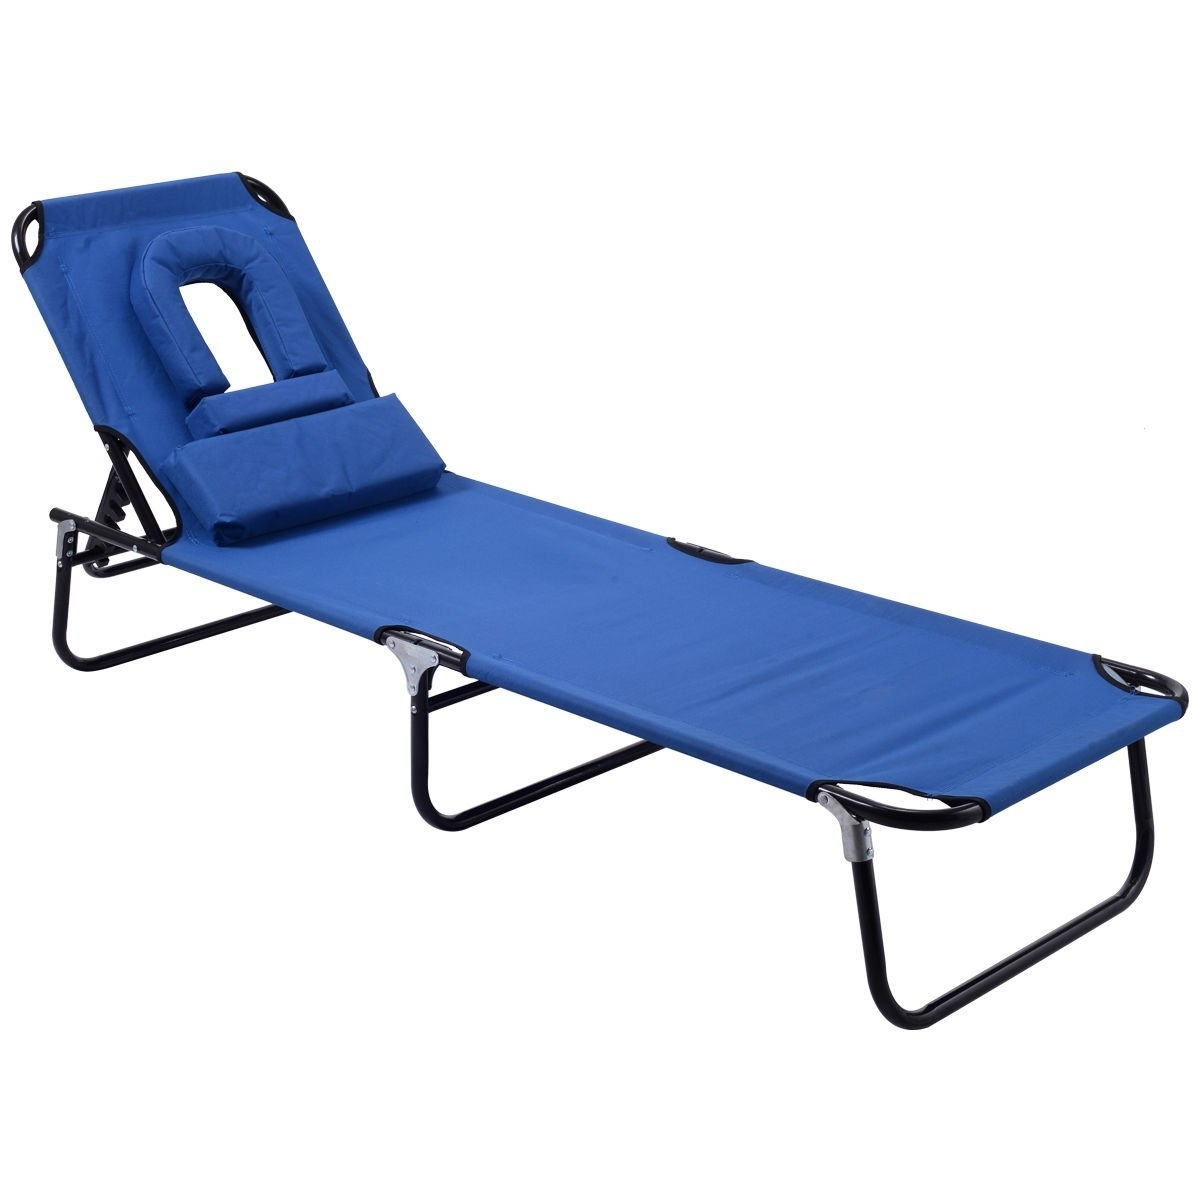 Outdoor : Lowes Outdoor Double Chaise Lounge Costco Patio Within Recent Folding Chaises (View 15 of 15)